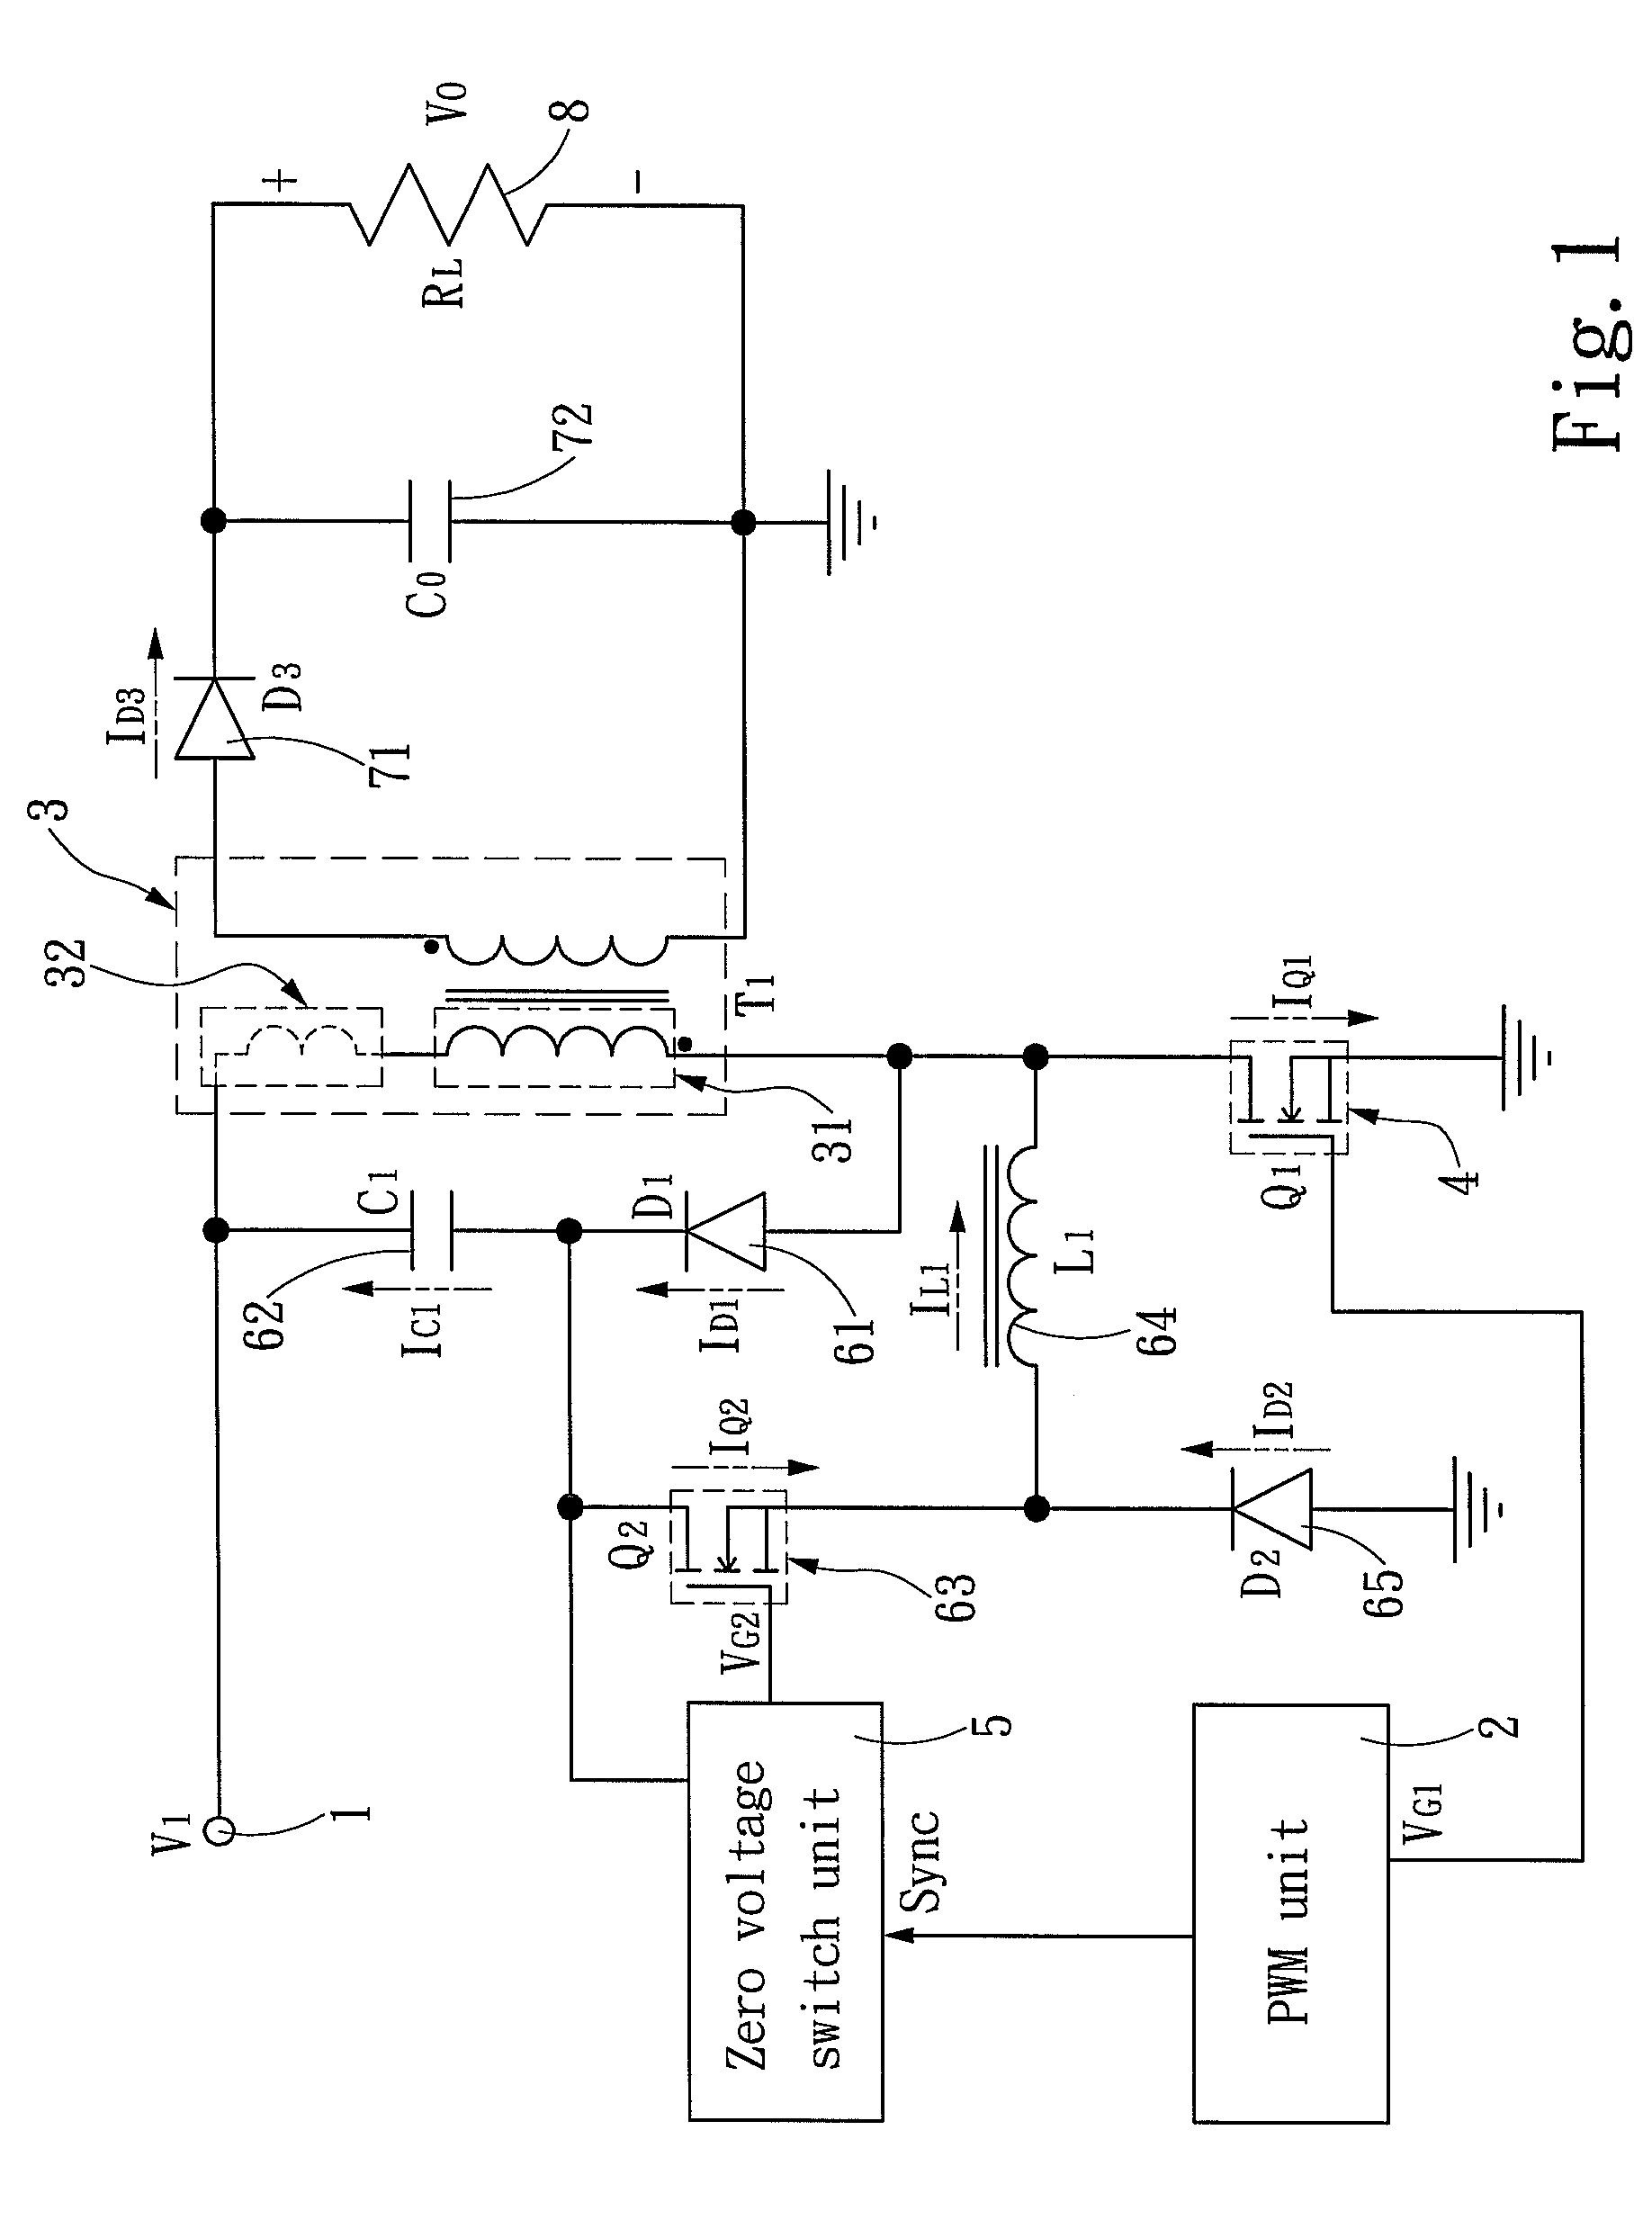 patent us7869235 - flyback converter having an active snubber